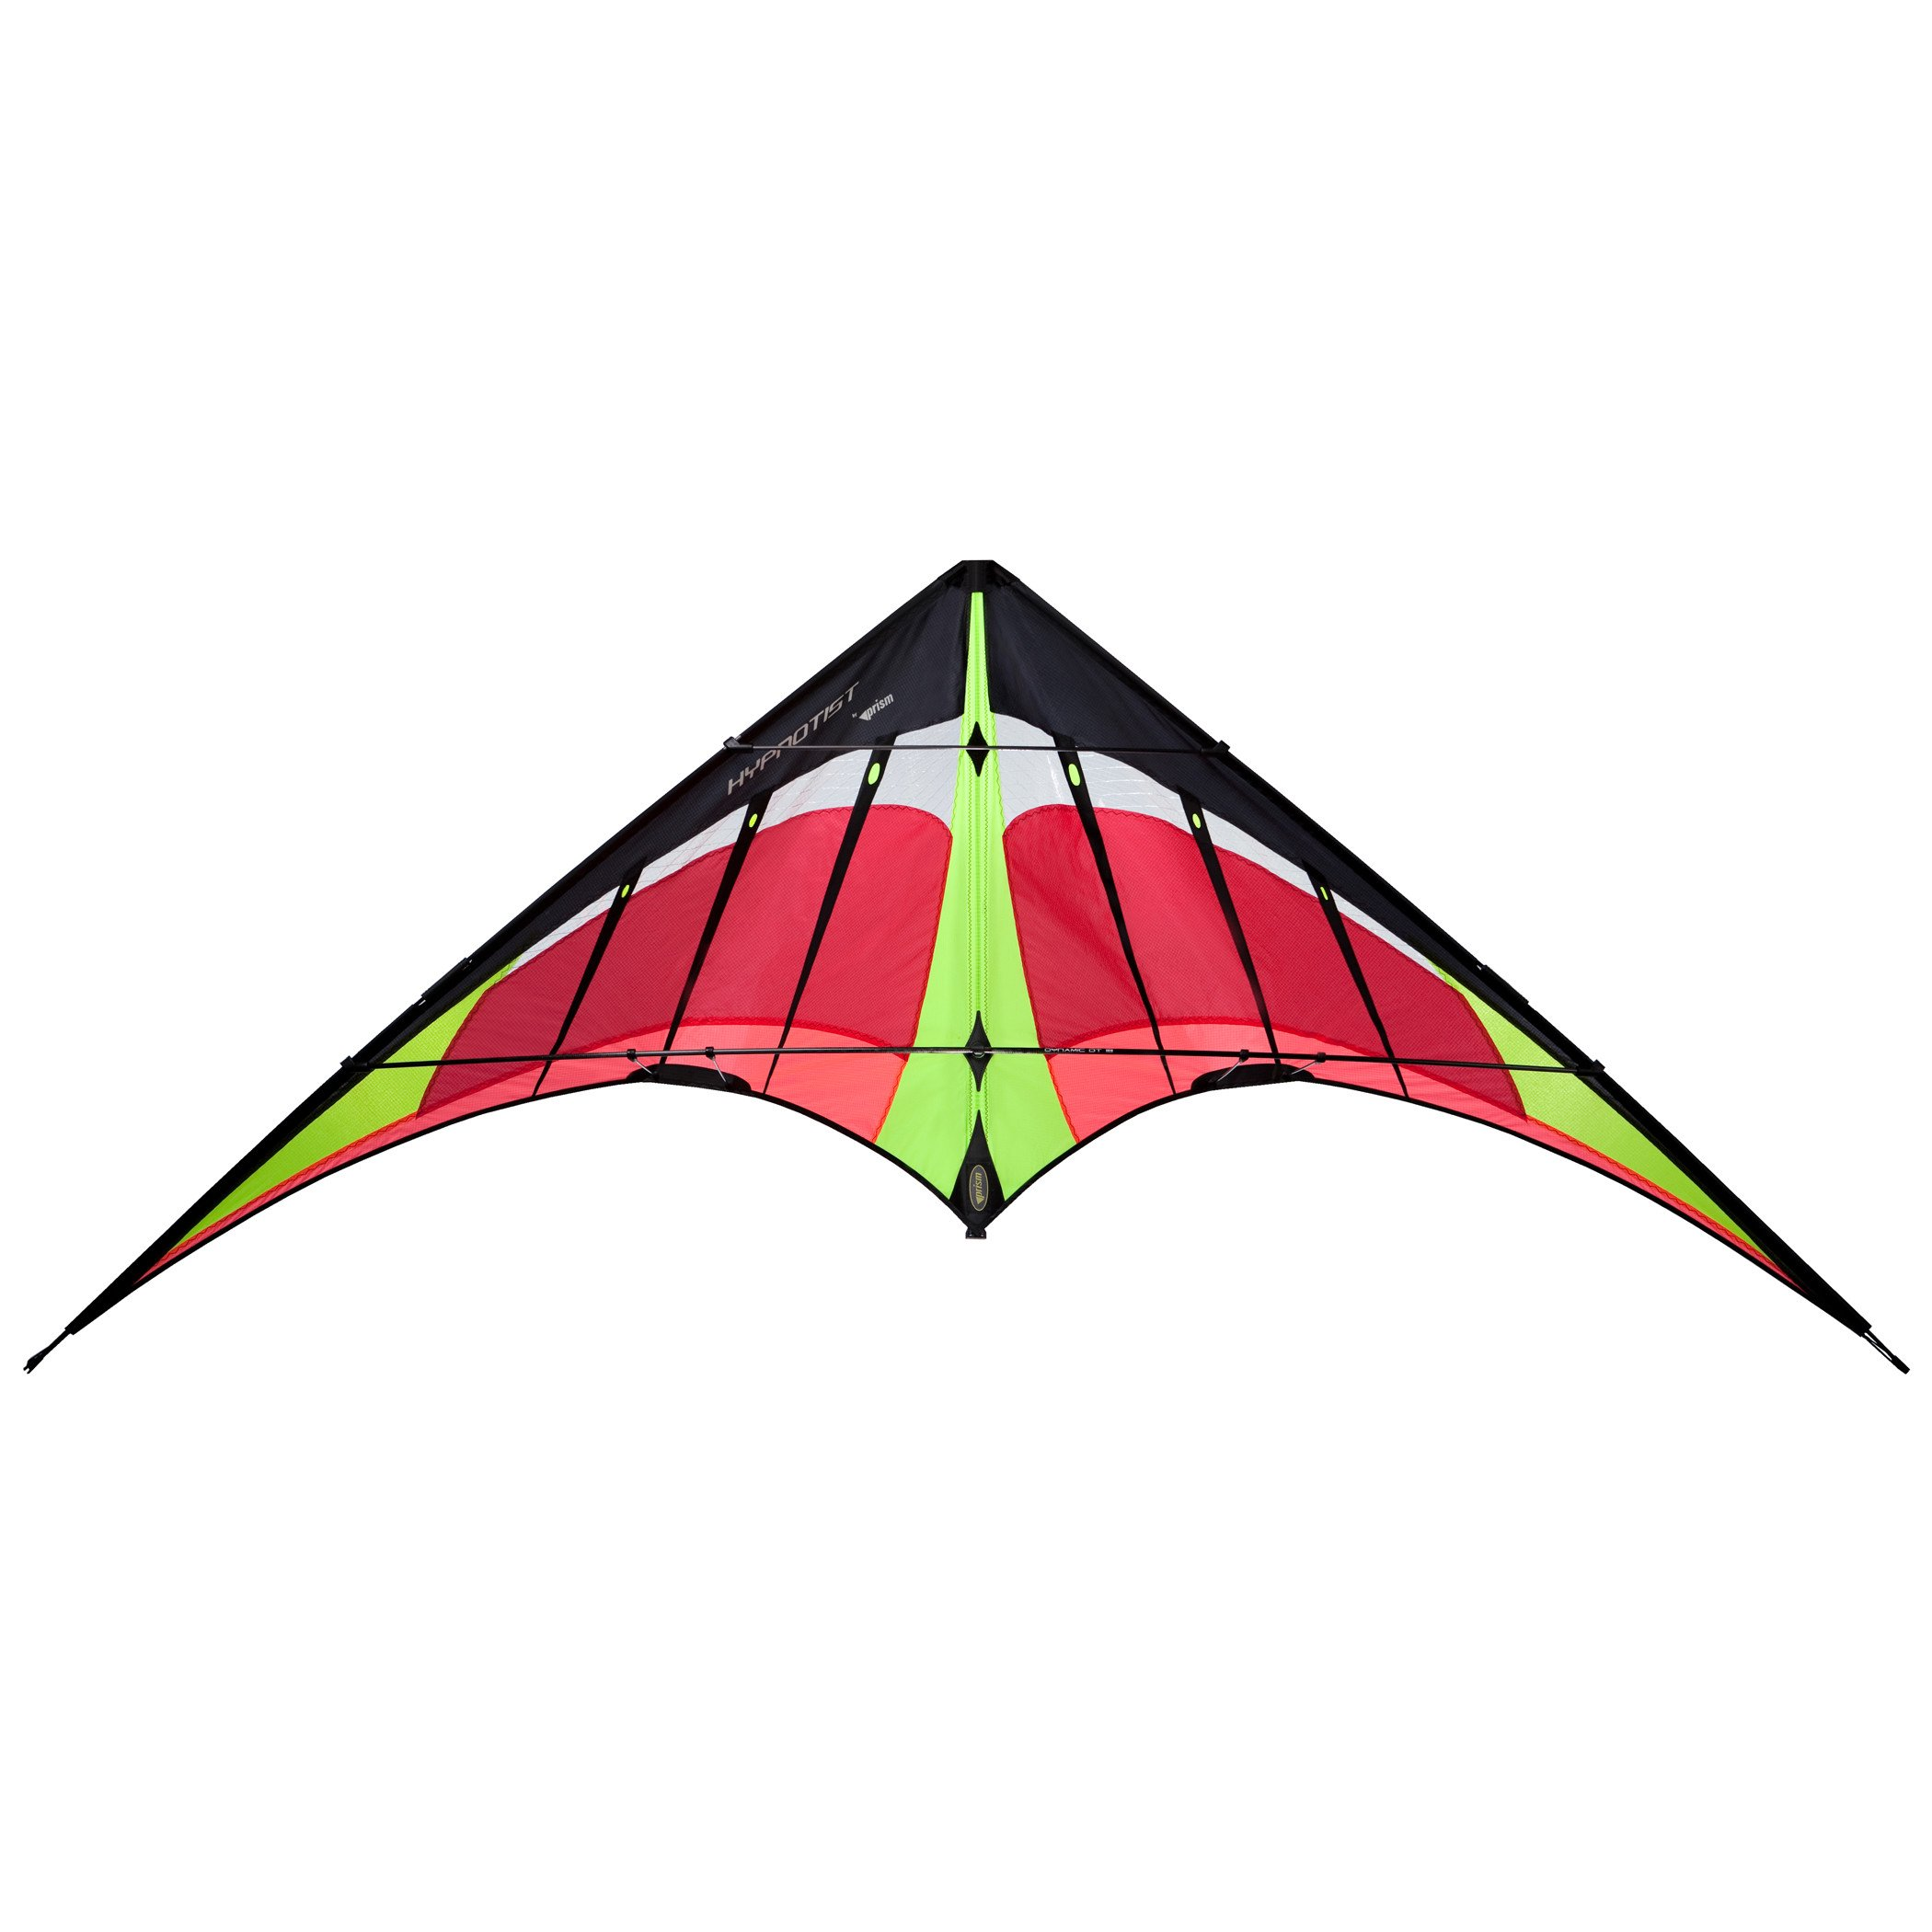 Prism Hypnotist Dual-line Stunt Kite, Fire by Prism Kite Technology